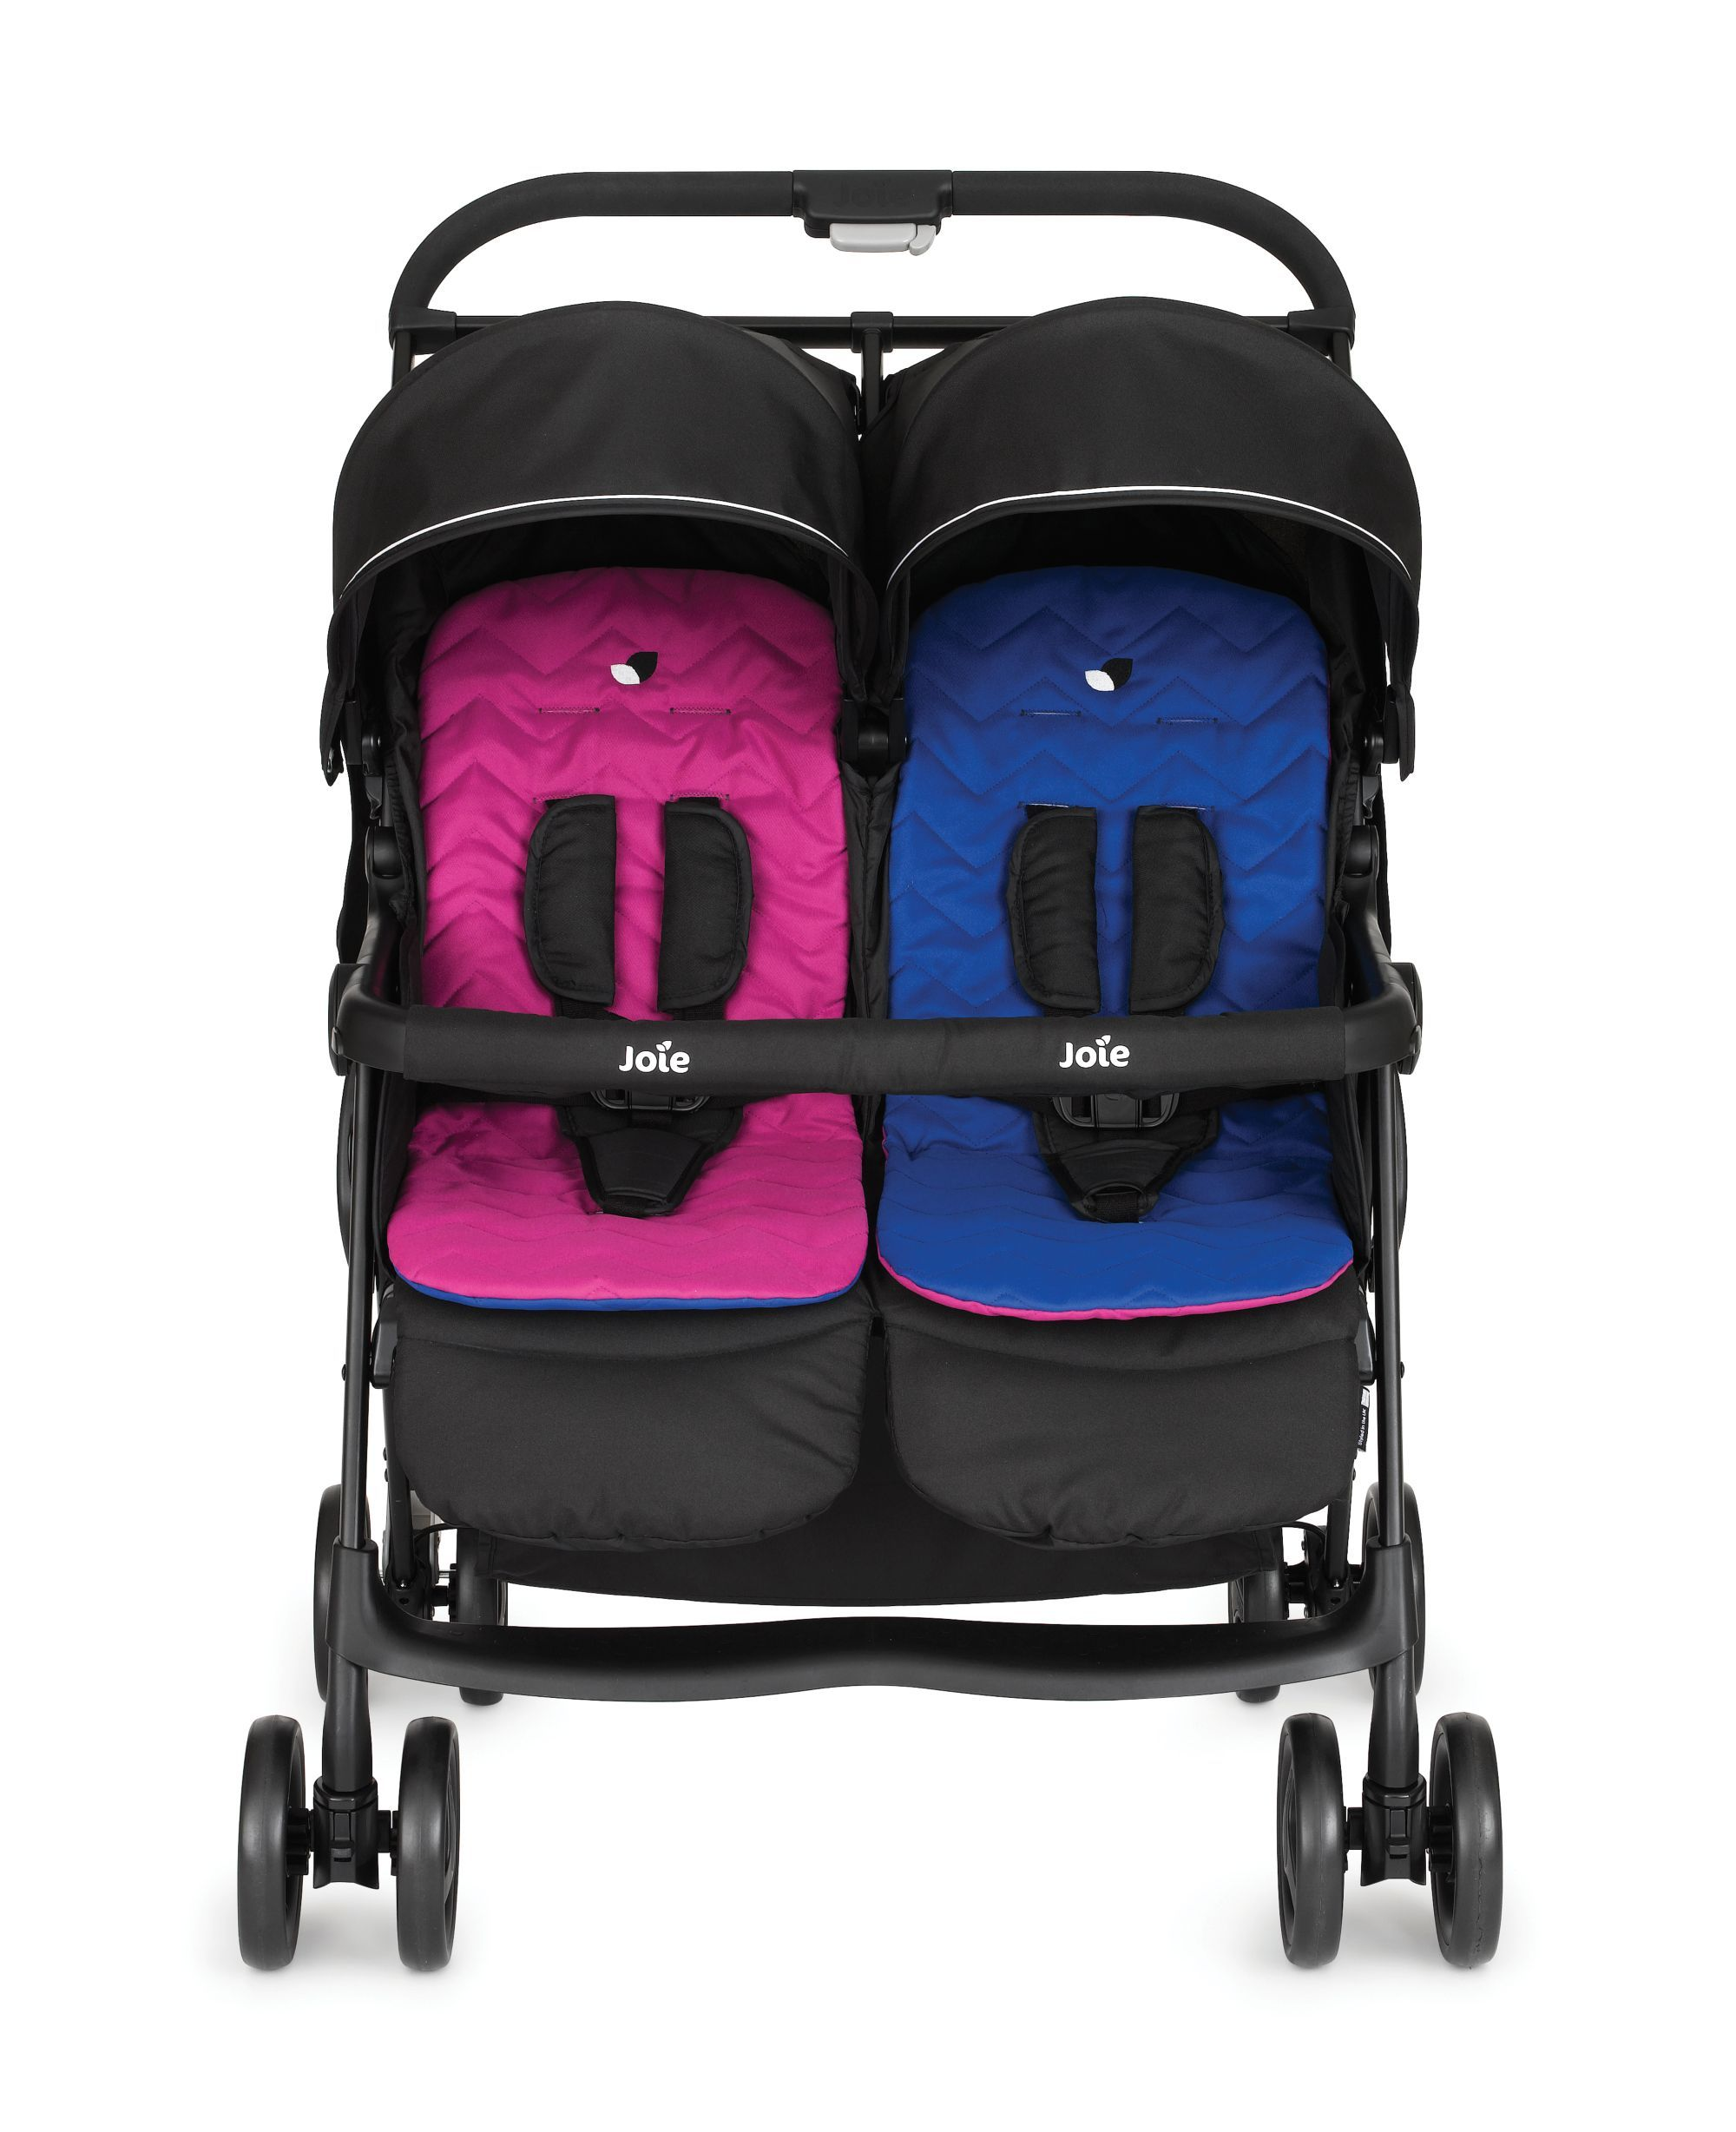 Joie Aire Twin Stroller Pink/Blue Twin strollers